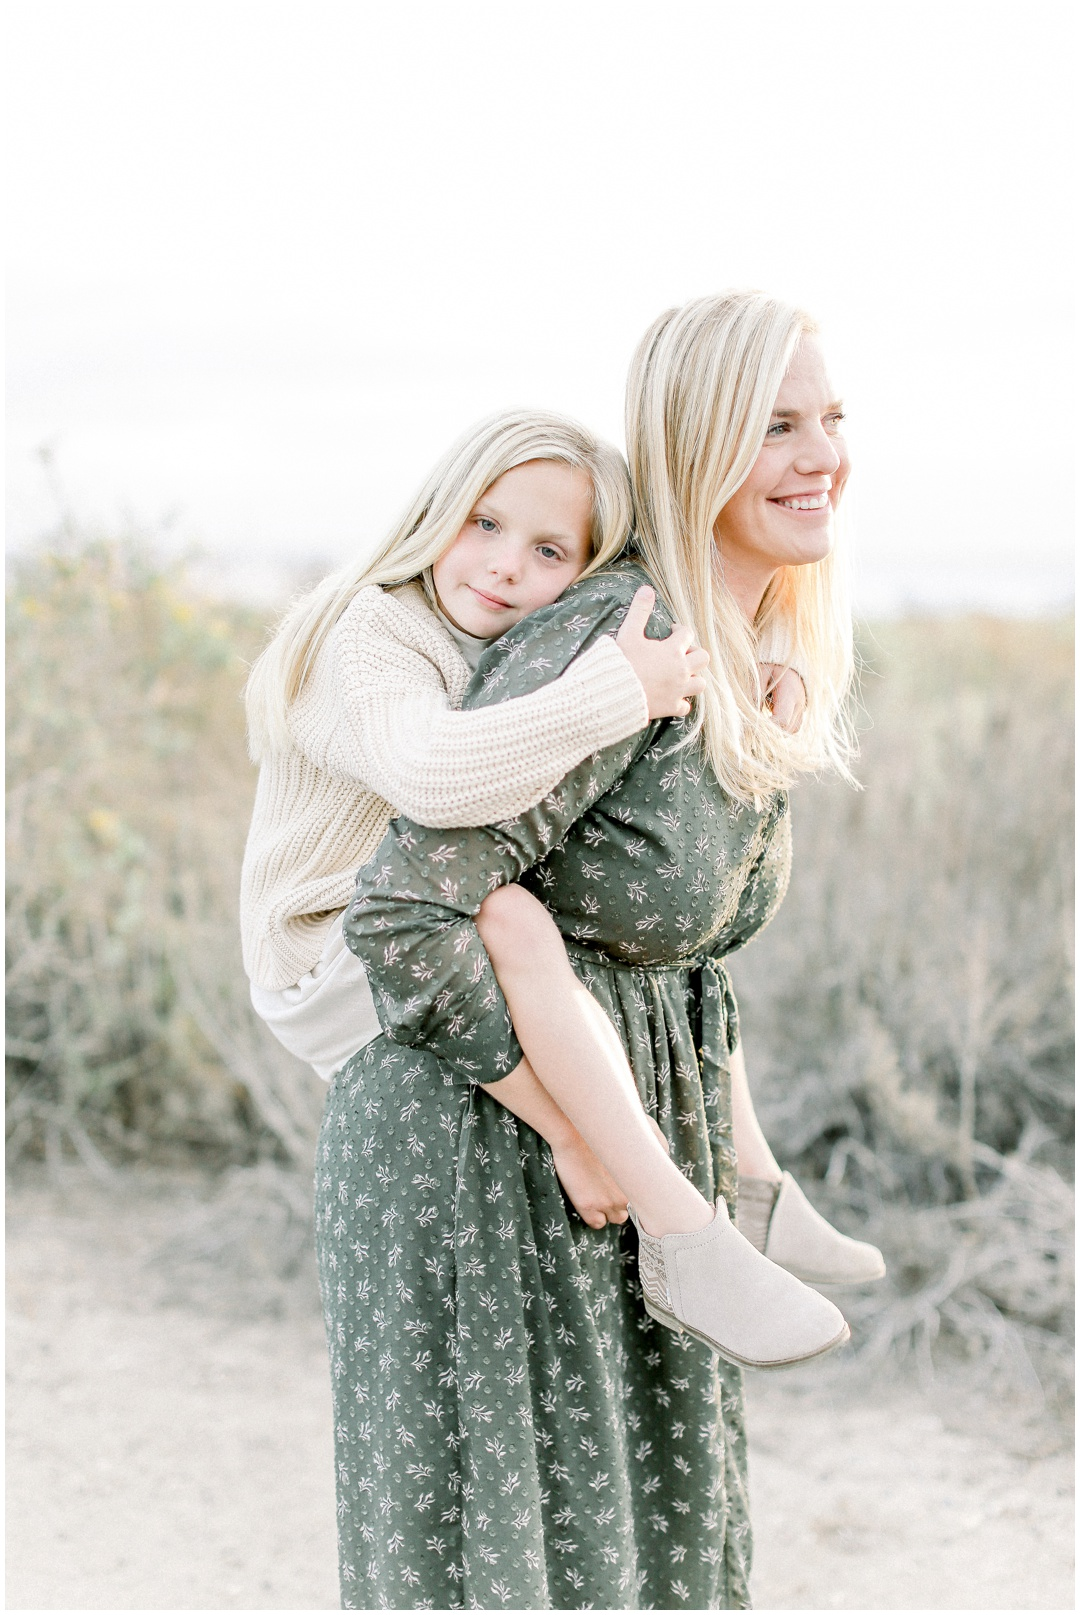 Newport_Beach_Newborn_Photographer_Newport_Beach_Maternity_Photographer_Orange_County_Family_Photographer_Cori_Kleckner_Photography_Huntington_Beach_Photographer__Laurie_Wisniewski_Family_2858.jpg